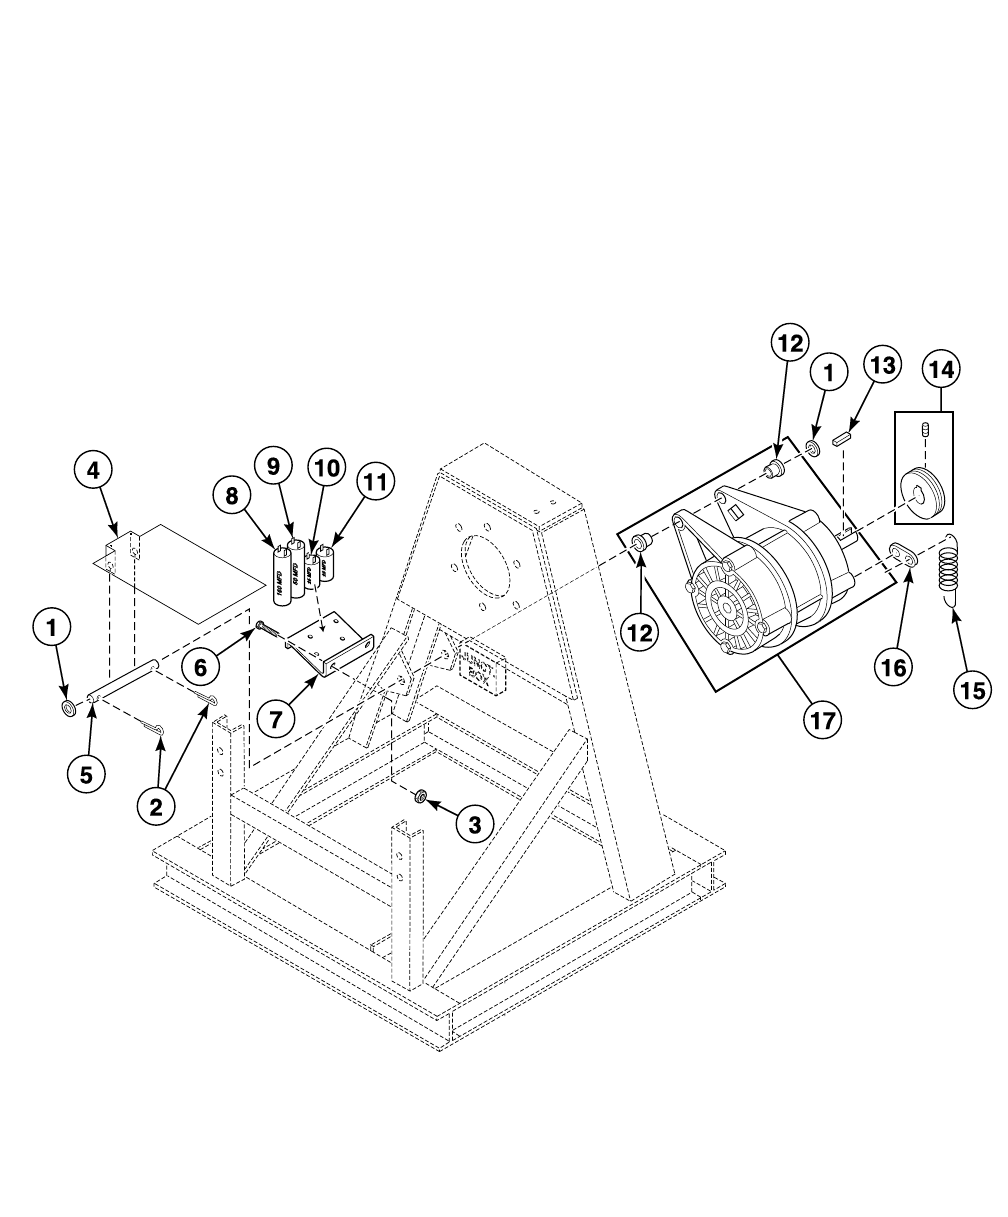 Washer Extractor Parts Manual Uw35p2 F232165 F430 Can Bus Diagram 48